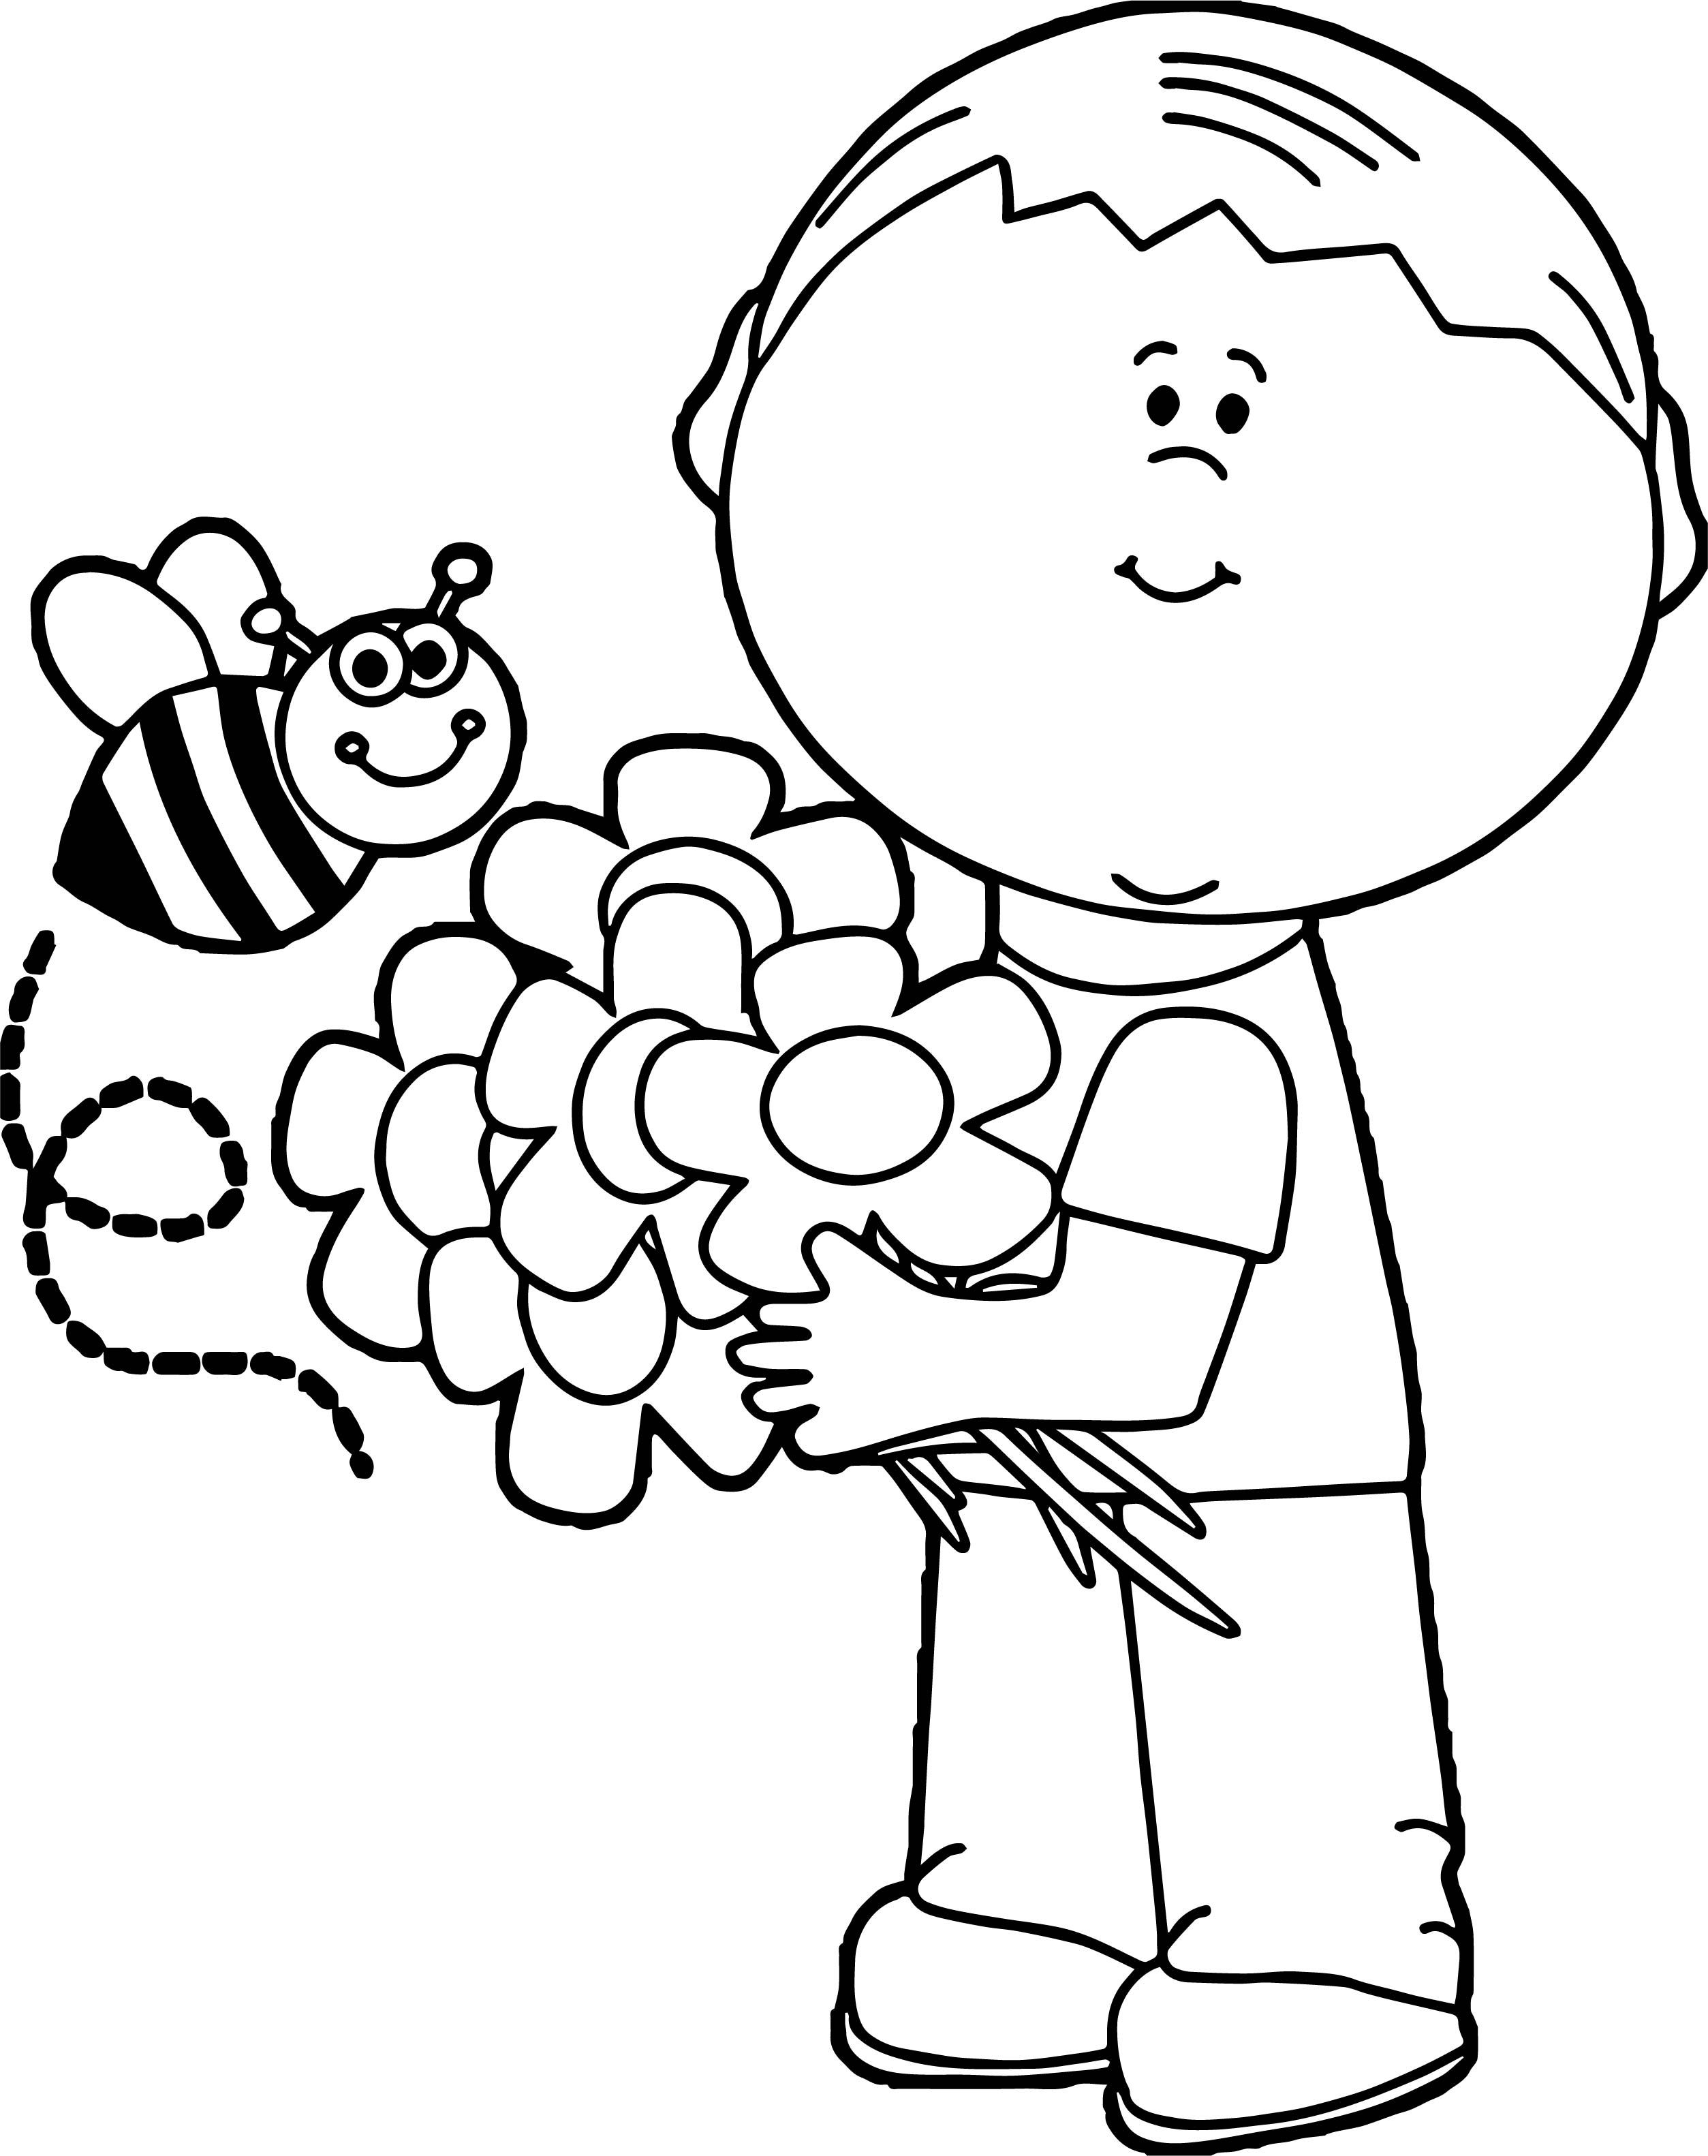 Cool Spring Boy Coloring Page Spring Coloring Pages Coloring